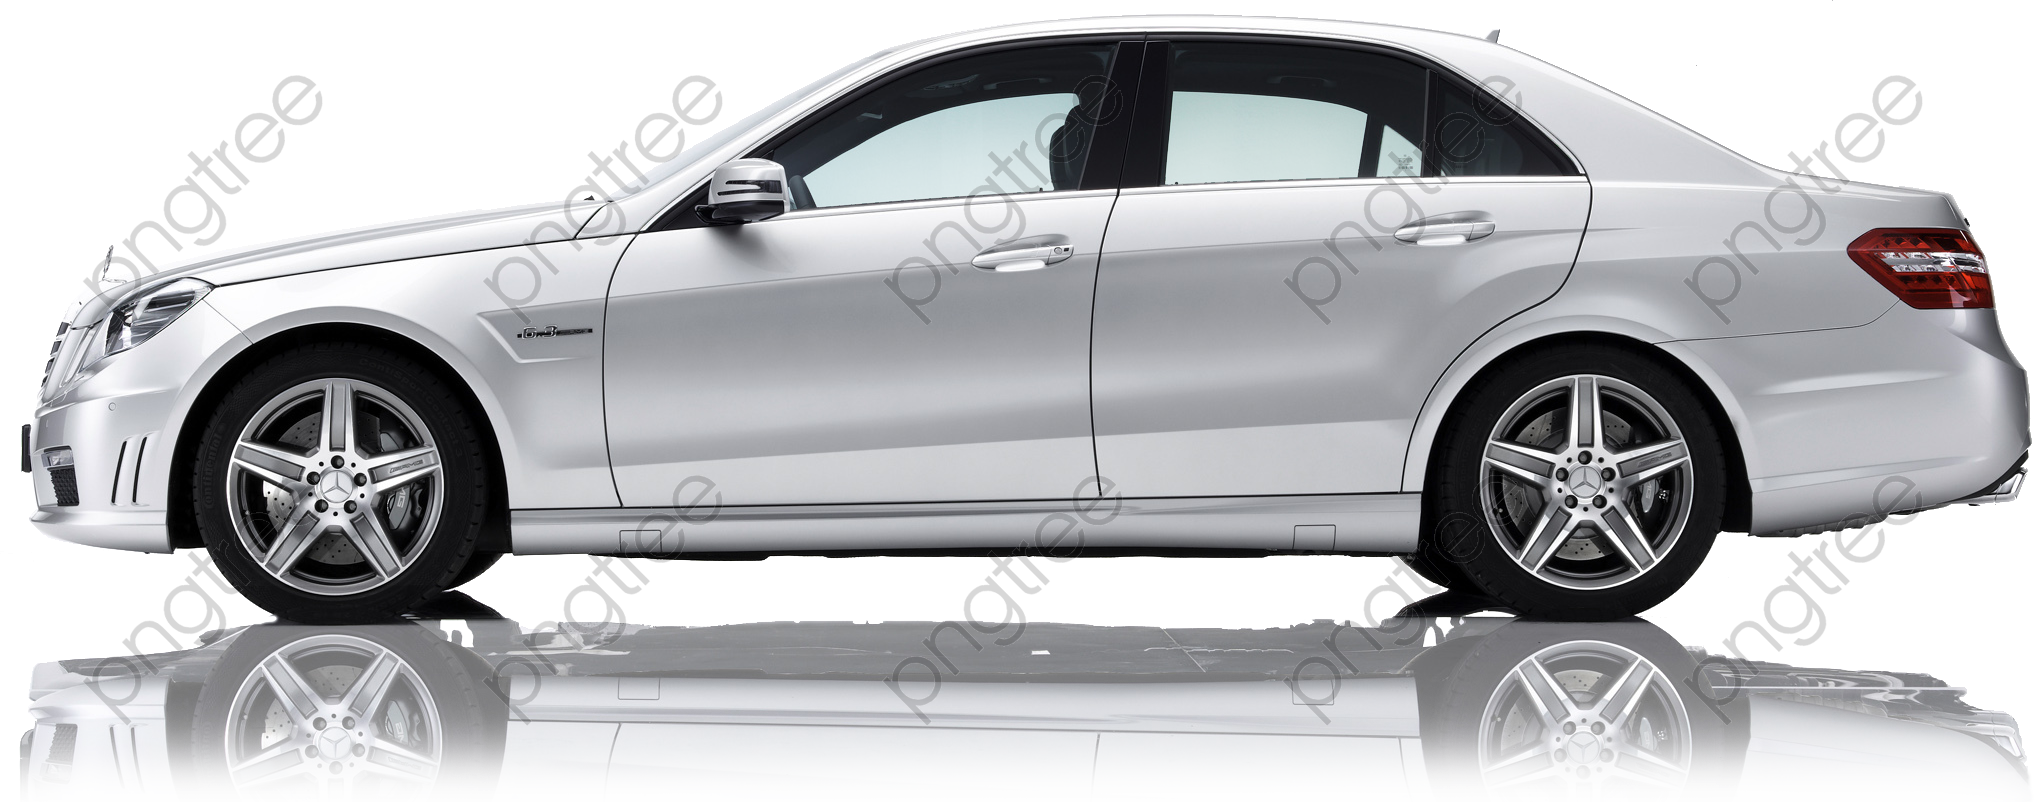 Transparent Car Png Format Image With Size 2035 802 Preview Page